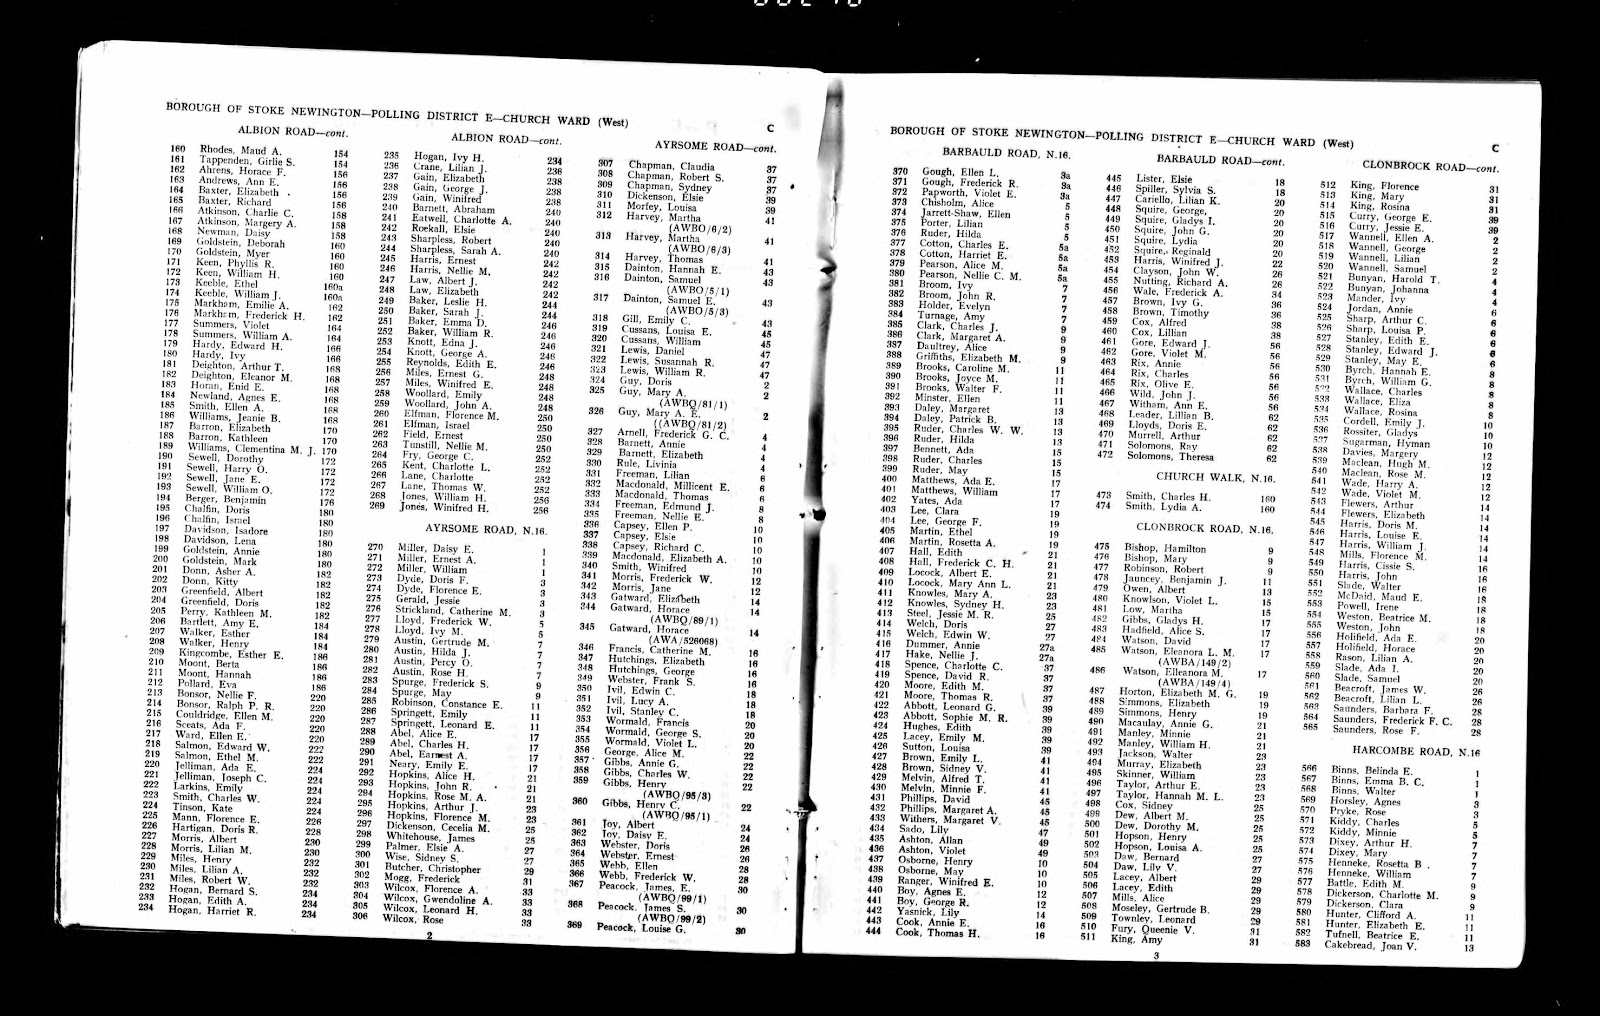 C:\Users\Main user\Documents\Ancestry\Dadaji\Miles Electoral\1945 1 H, L & R Miles 232 Albion Rd.jpg